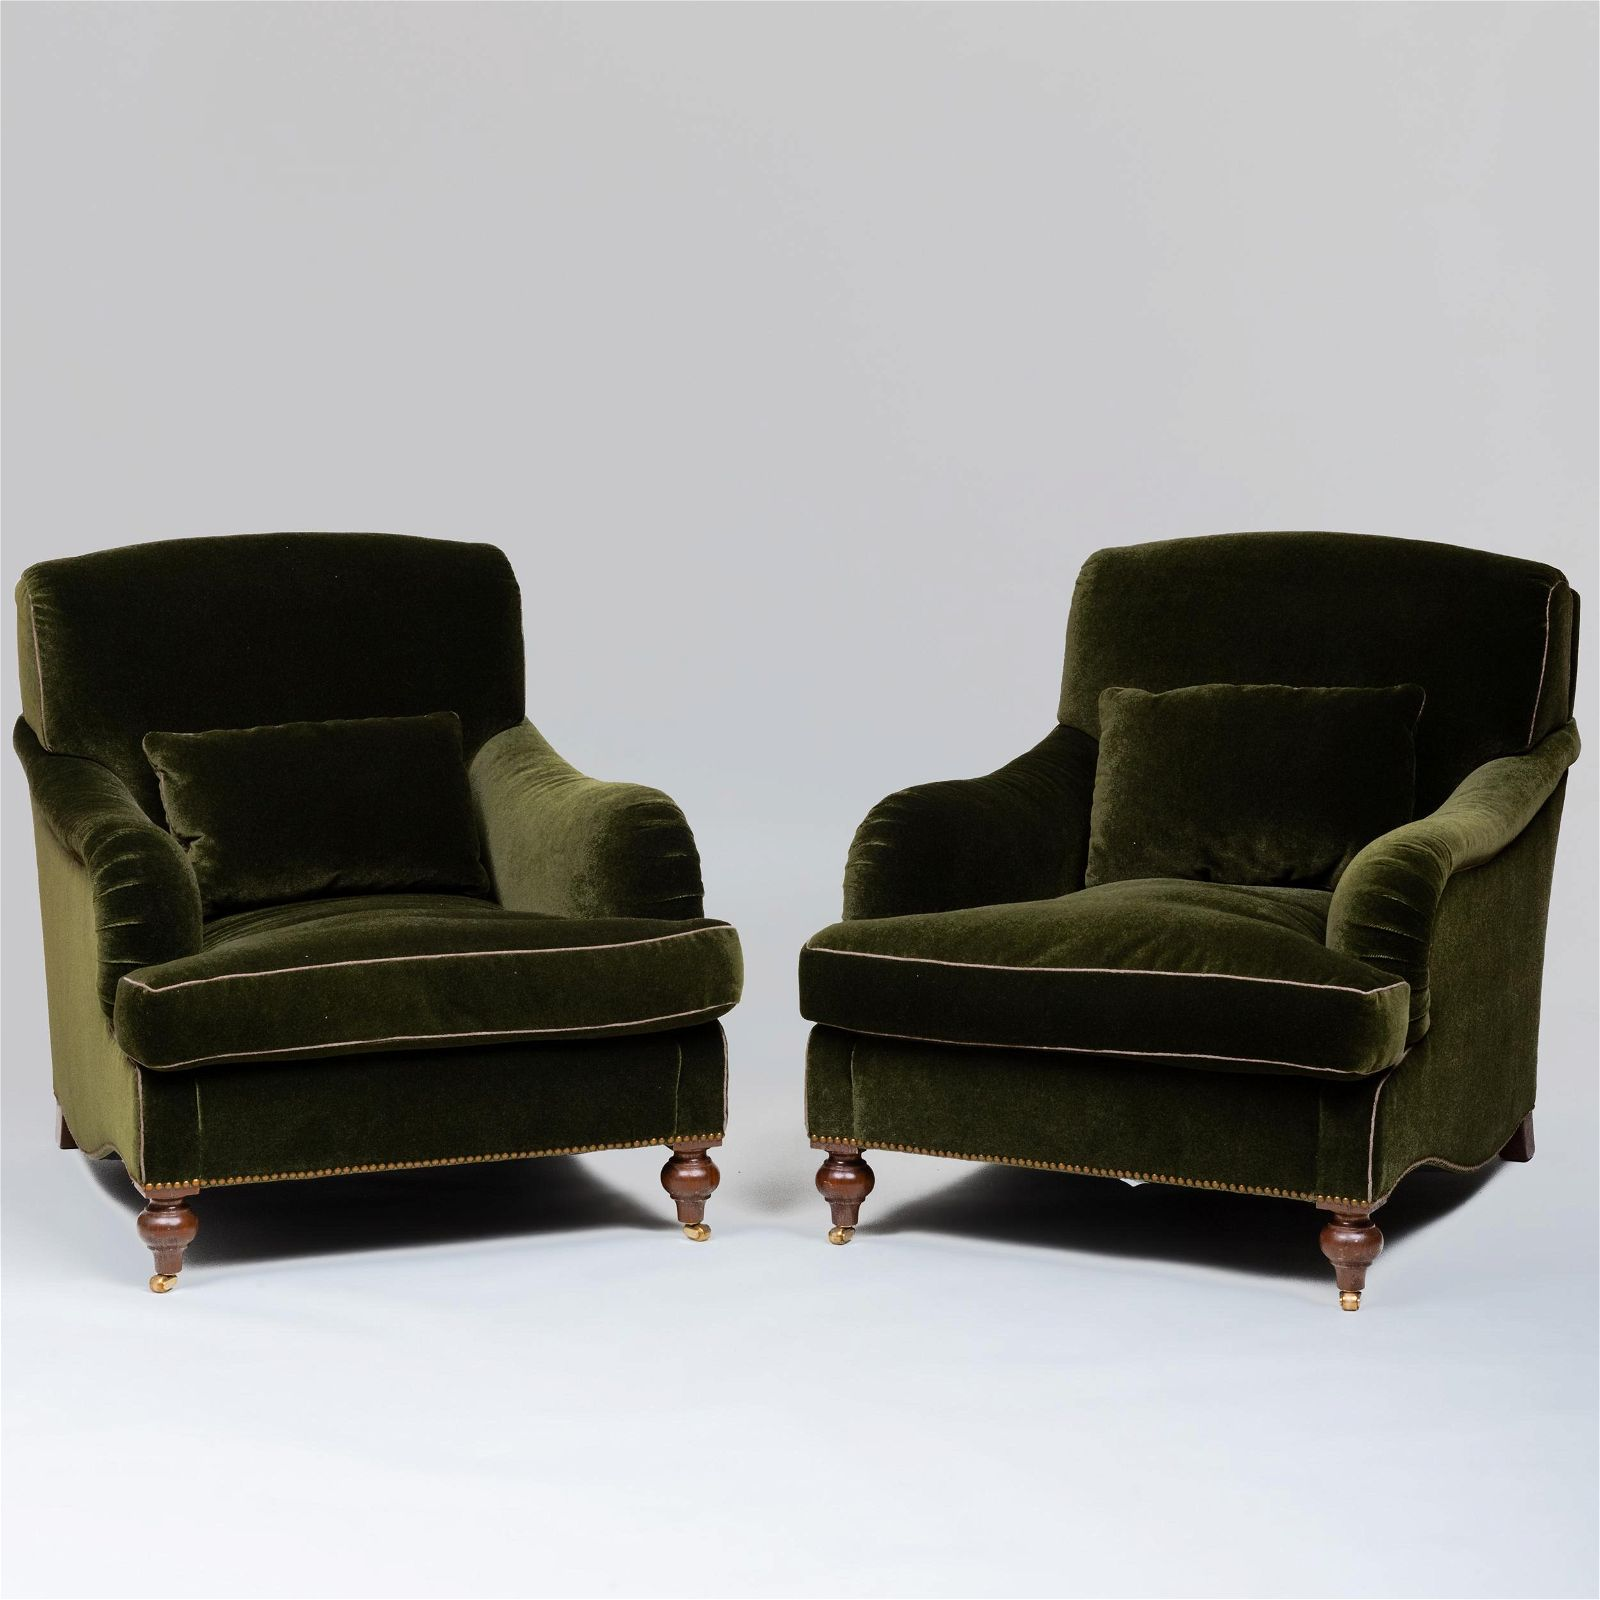 Pair of Green Mohair Upholstered Club Chairs, A.